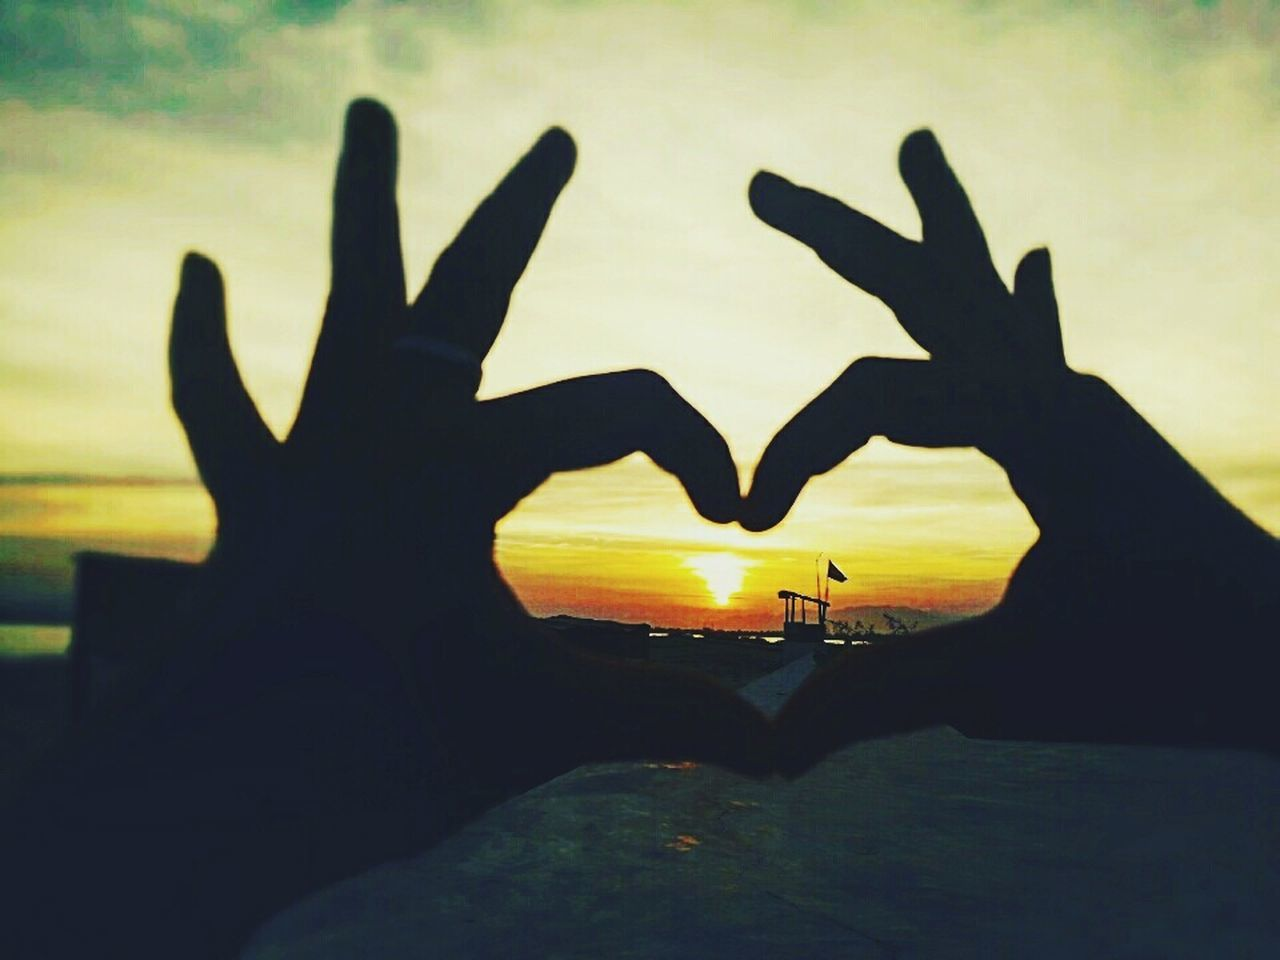 human hand, human finger, silhouette, sunset, heart shape, forming, shape, human body part, making, real people, one person, close-up, outdoors, nature, sky, day, people